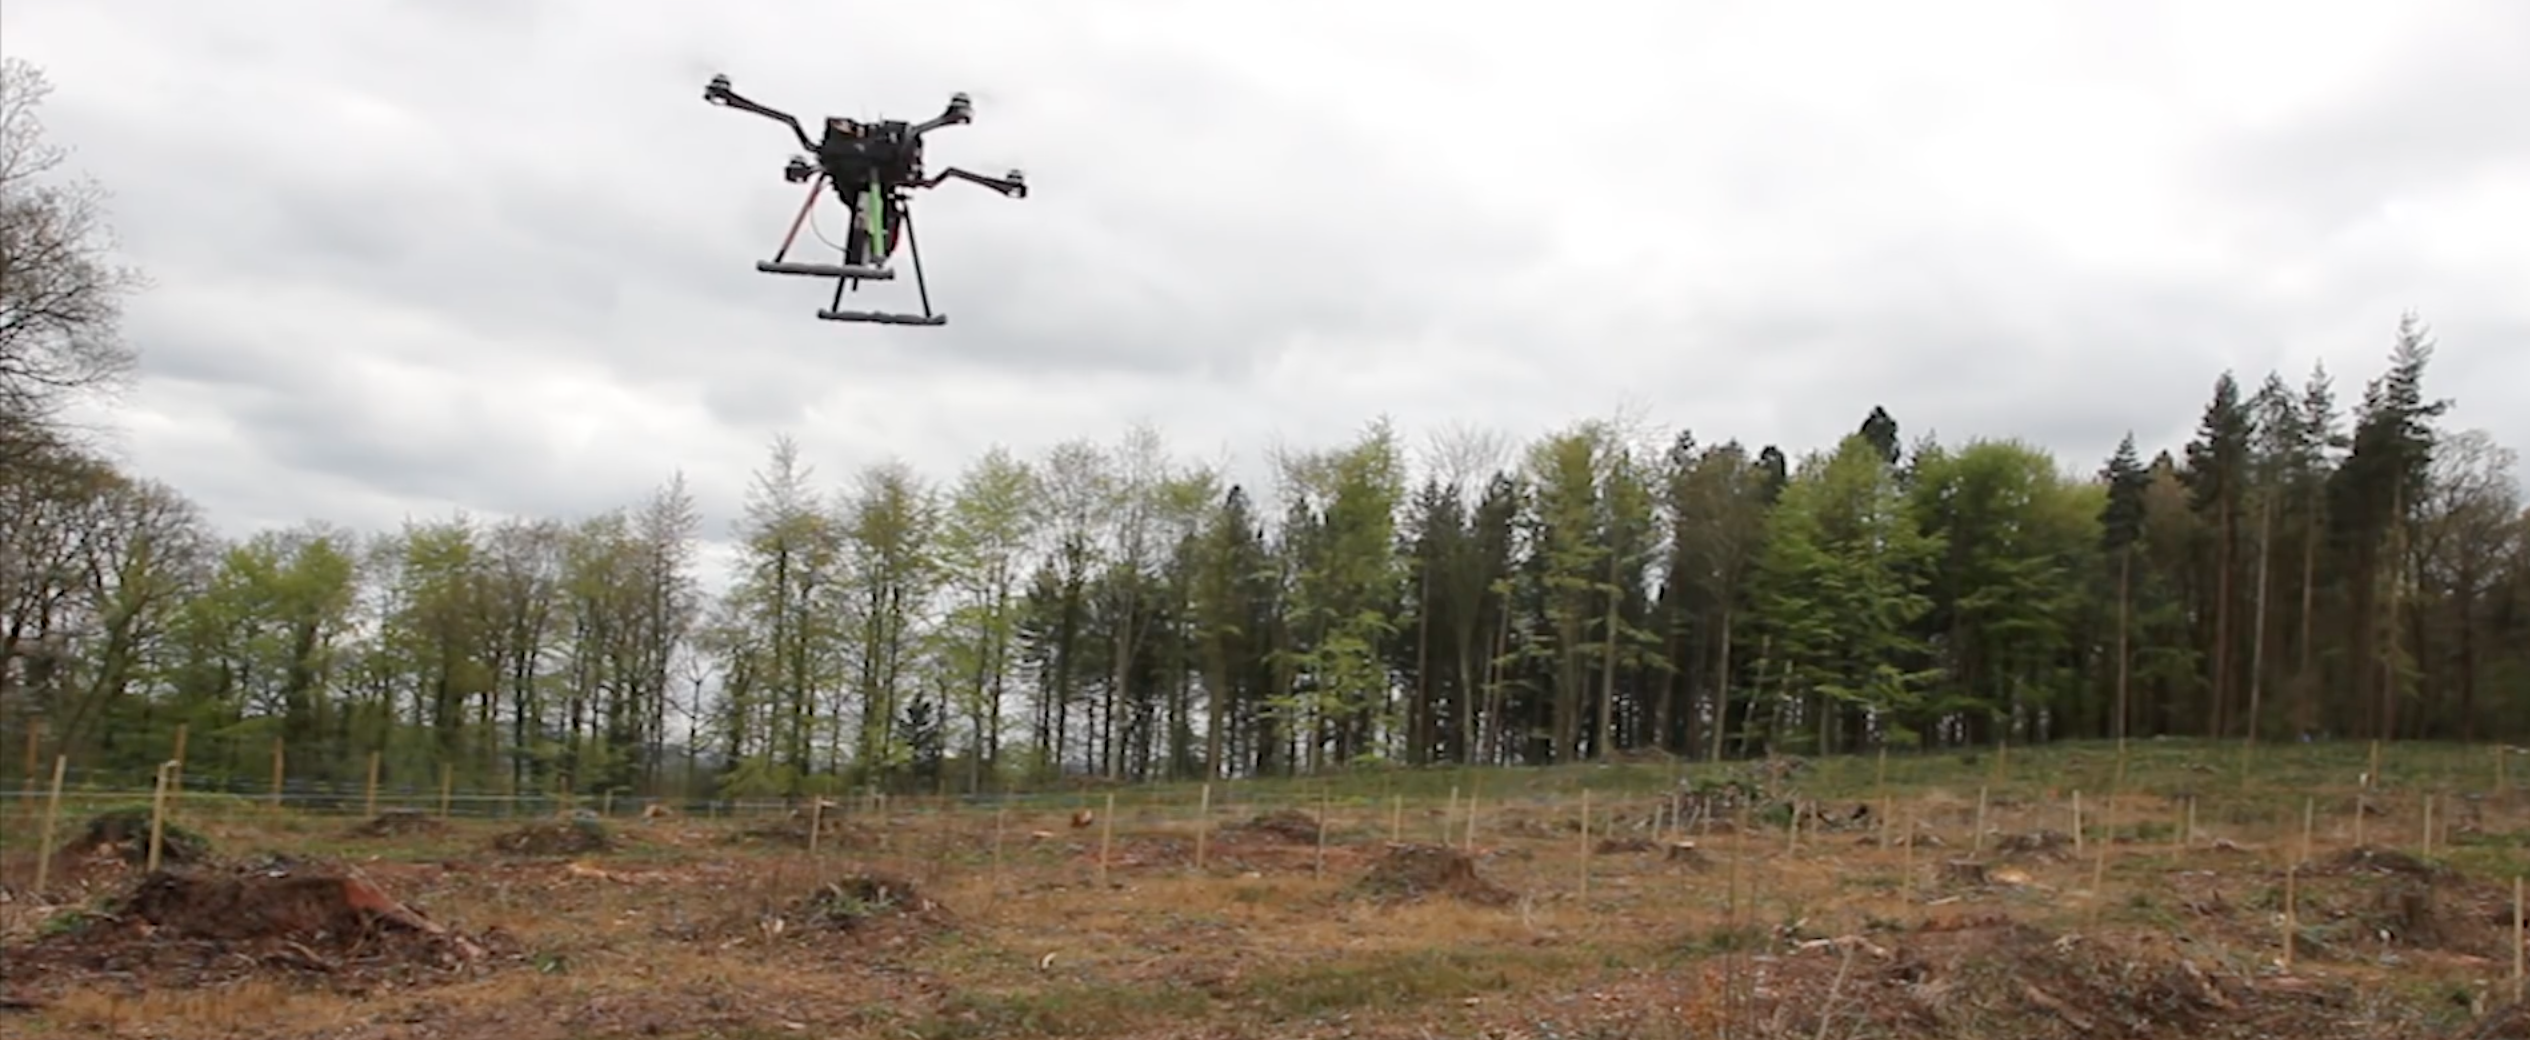 Tree-planting drones can sow 100,000 seeds a day